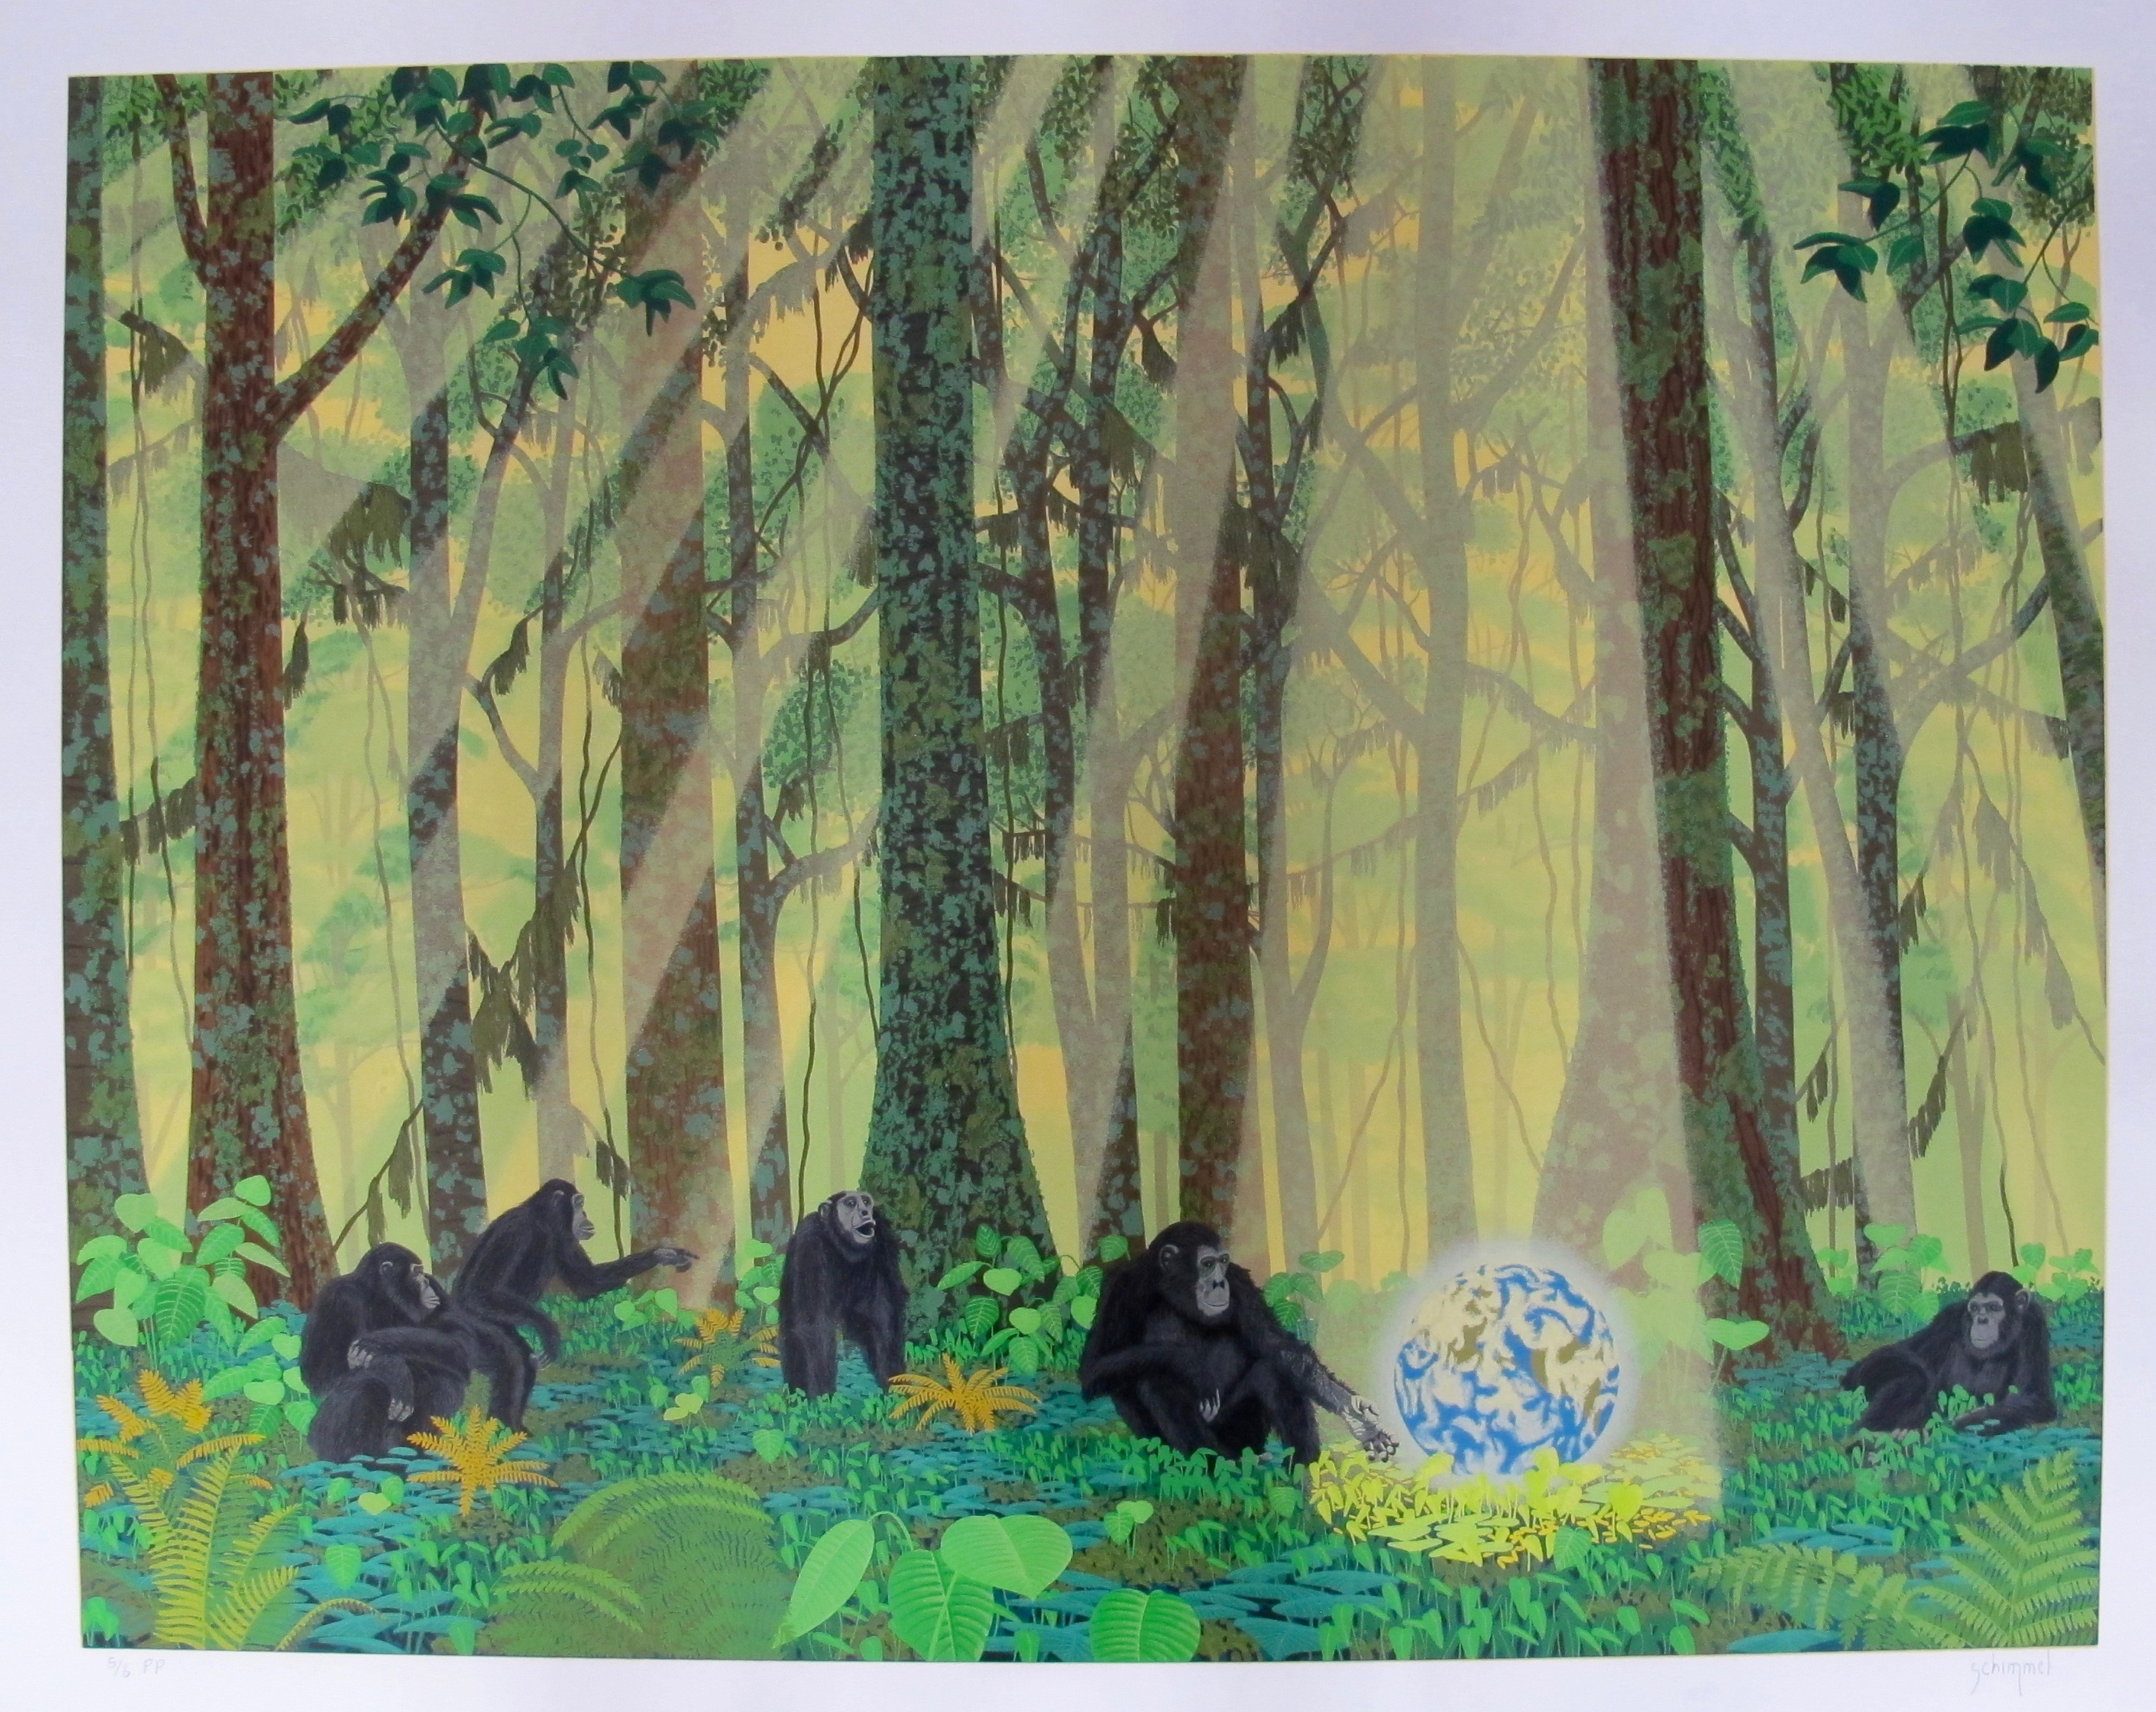 WILLIAM SCHIMMEL CHIMPS EARTH Hand Signed Serigraph CHIMPANZEE